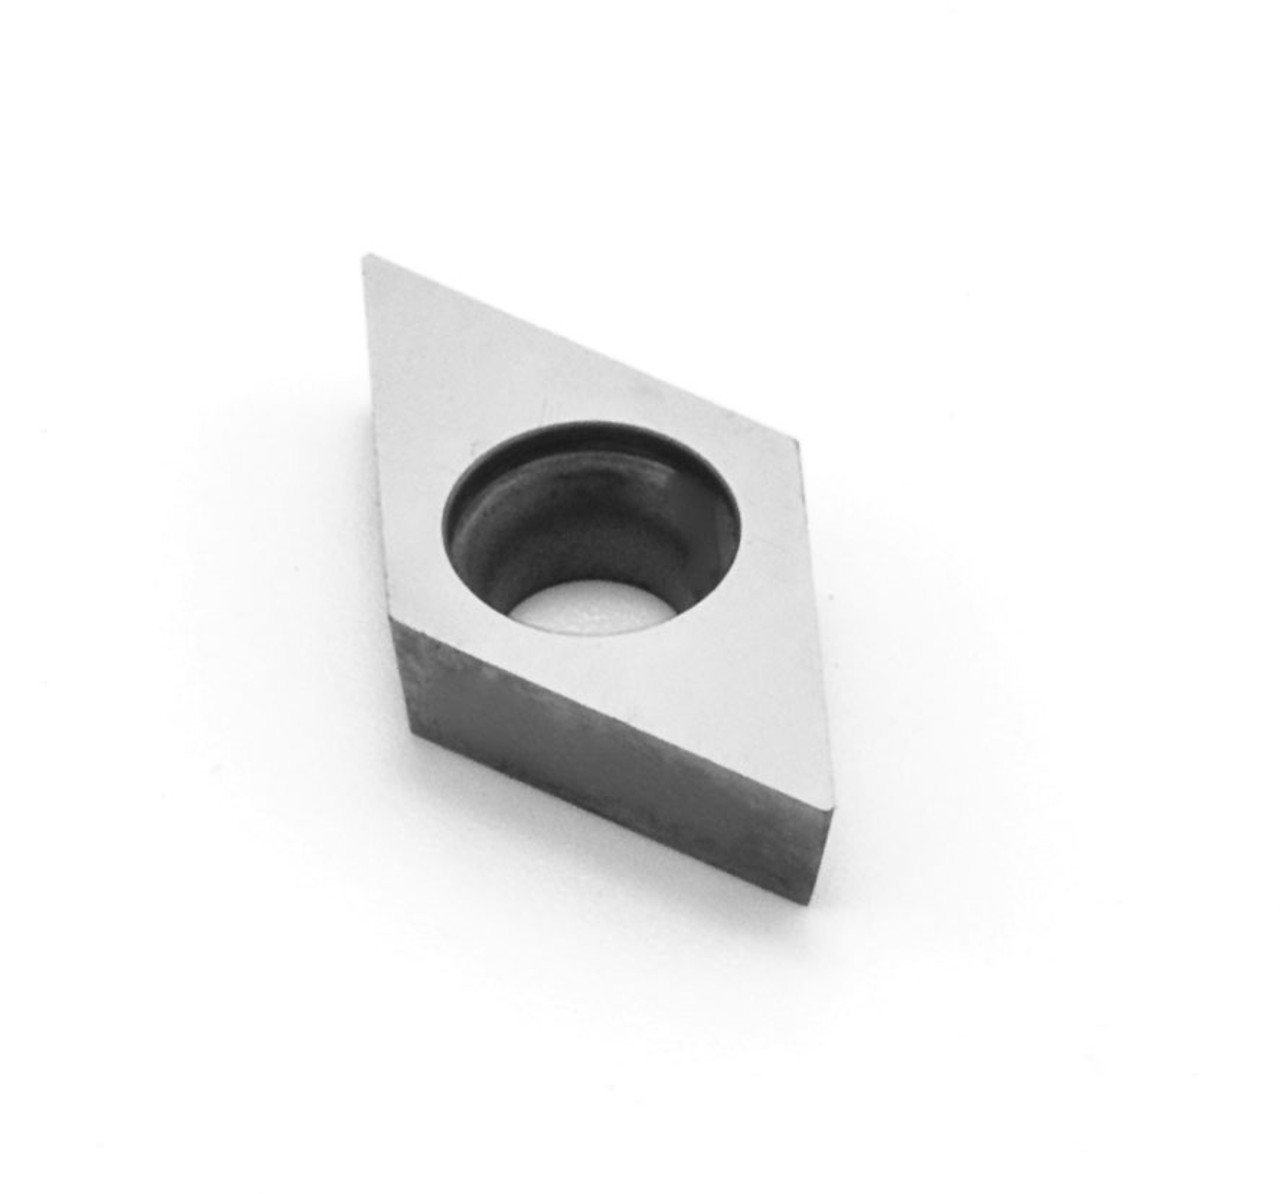 Replacement carbide cutter for Simple 55 Detailer